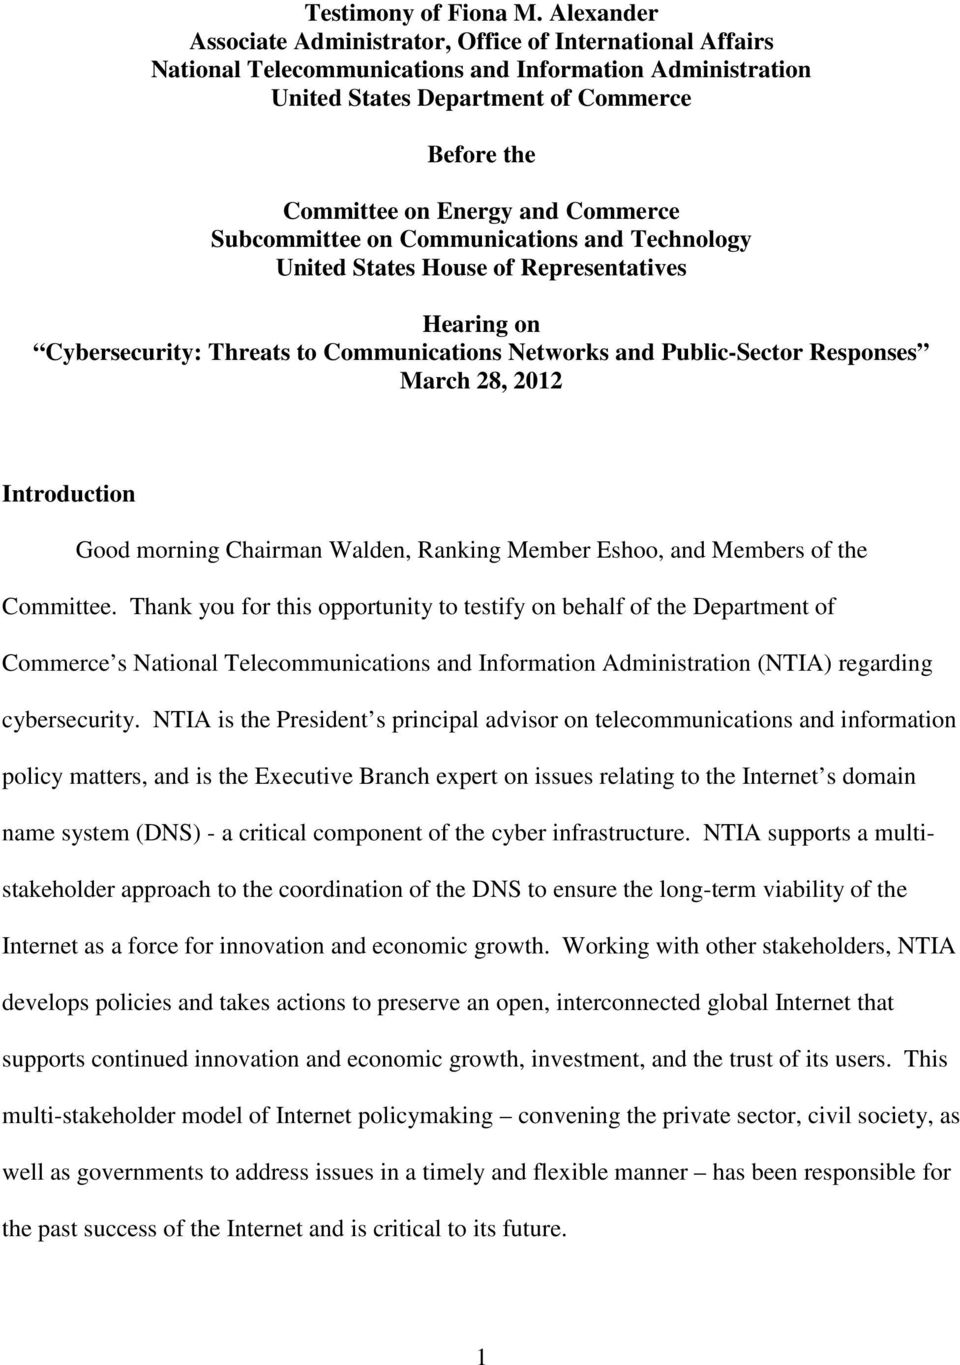 Commerce Subcommittee on Communications and Technology United States House of Representatives Hearing on Cybersecurity: Threats to Communications Networks and Public-Sector Responses March 28, 2012